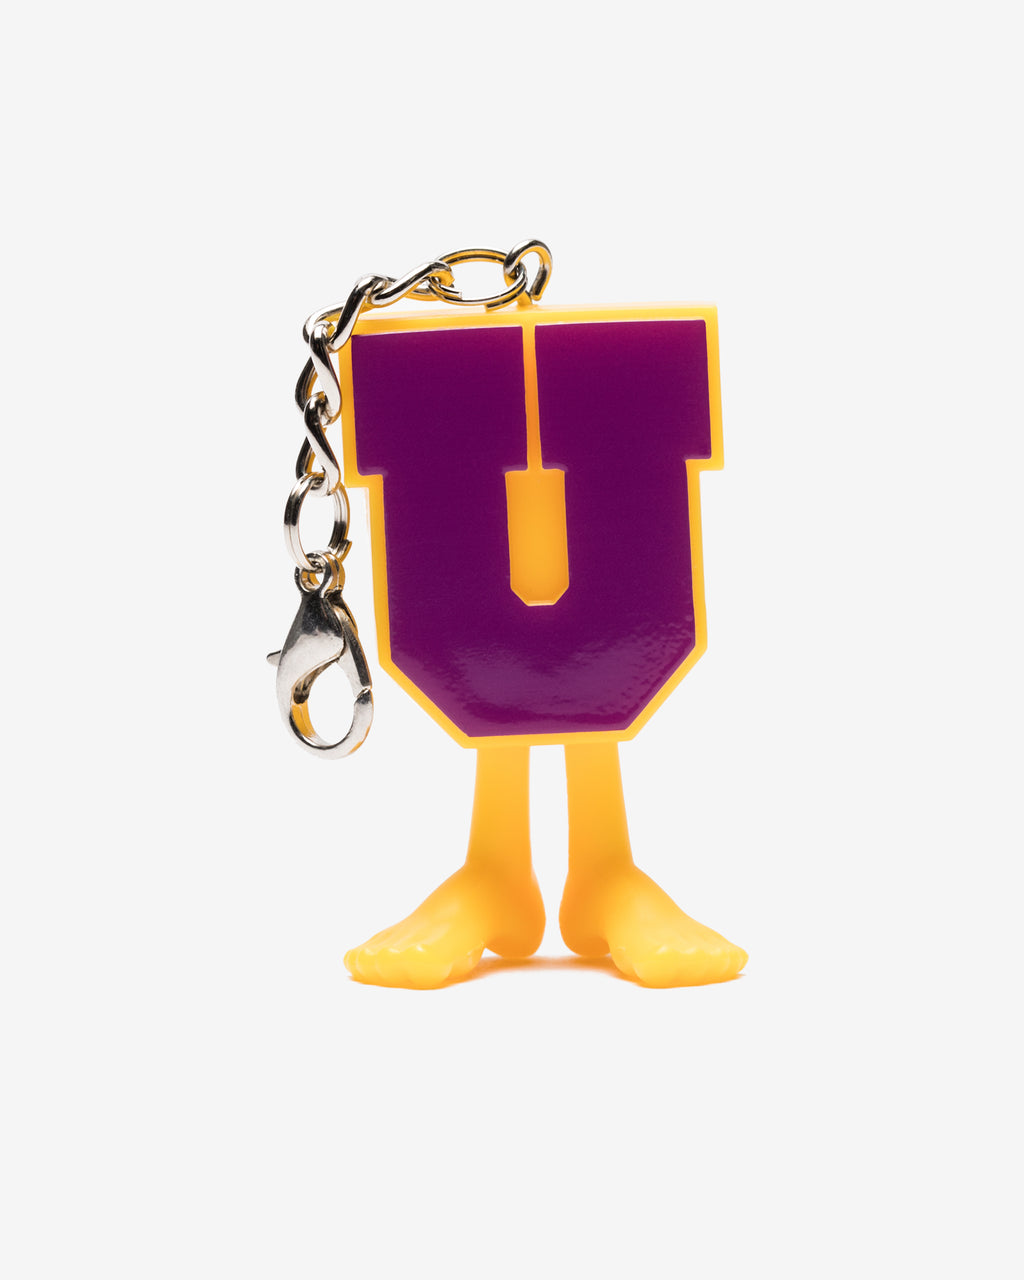 UNDEFEATED X MEDICOM UMAN KEYCHAIN - PURPLE/YELLOW